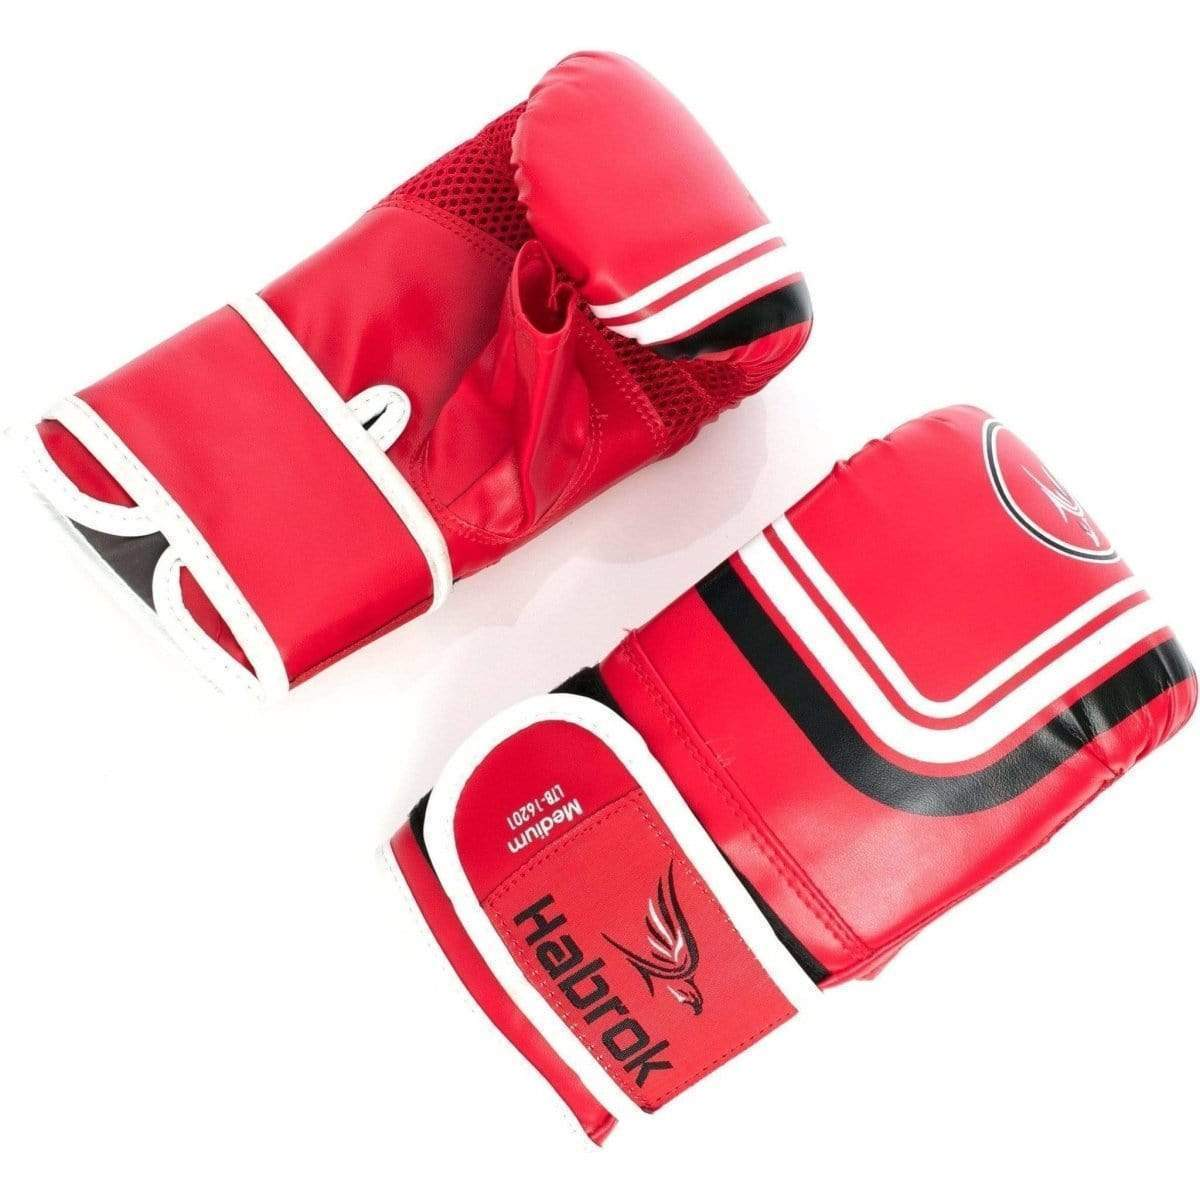 Habrok MMA GLOVES M / RED Pugnator | MMA Sparring Gloves